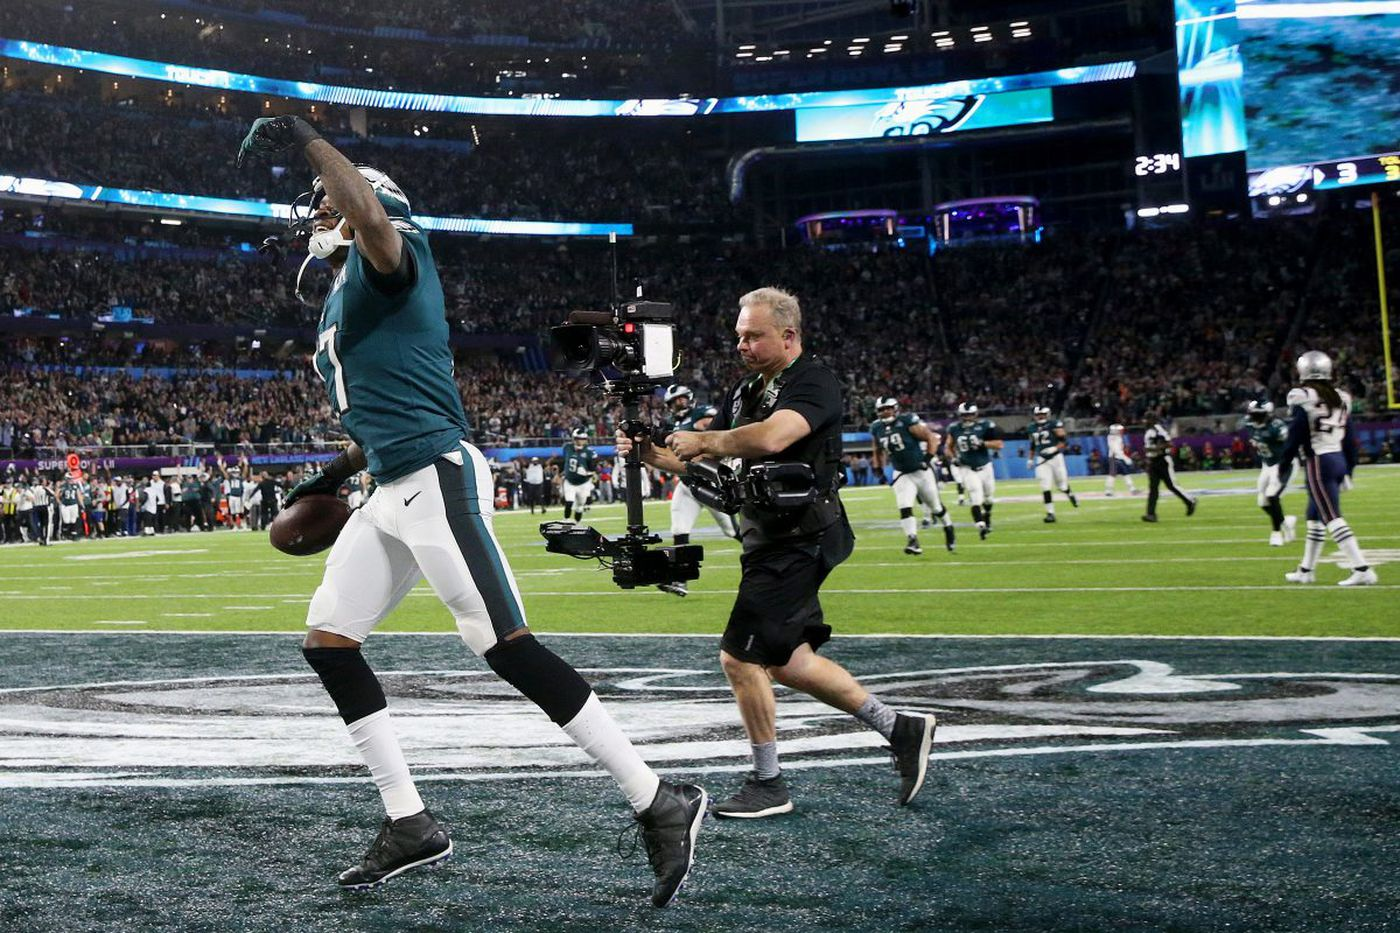 Alshon Jeffery overcomes modest beginnings, shines for Eagles on grandest stage | Mike Sielski